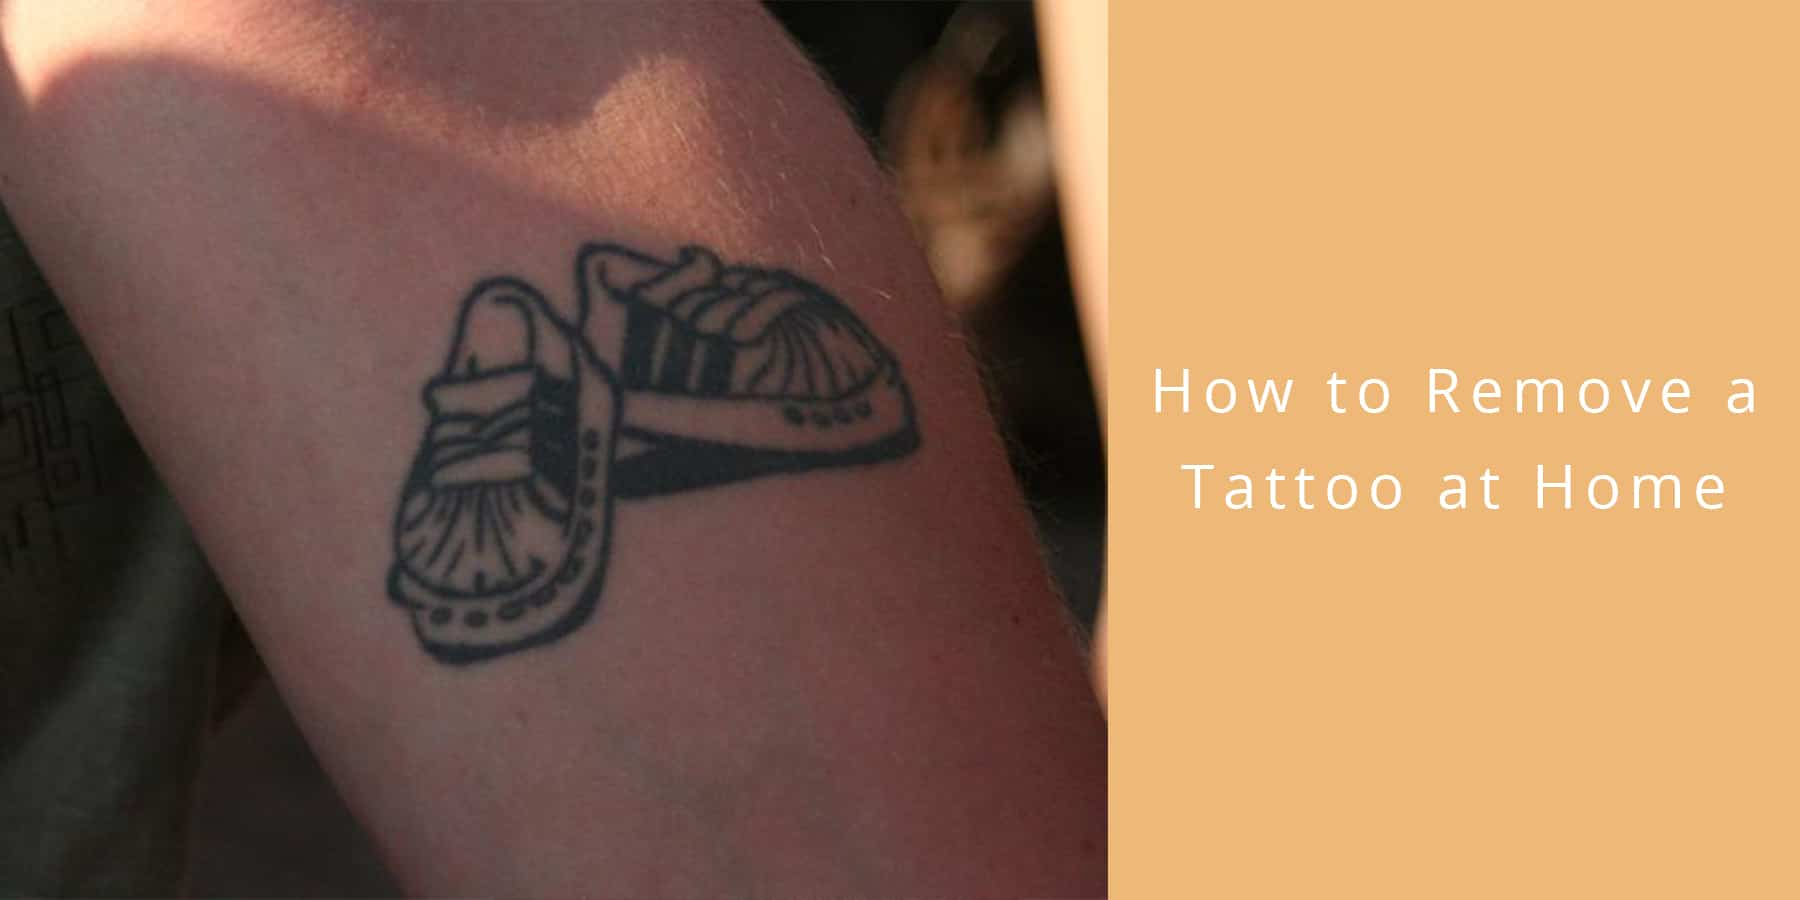 How to Remove a Tattoo at Home